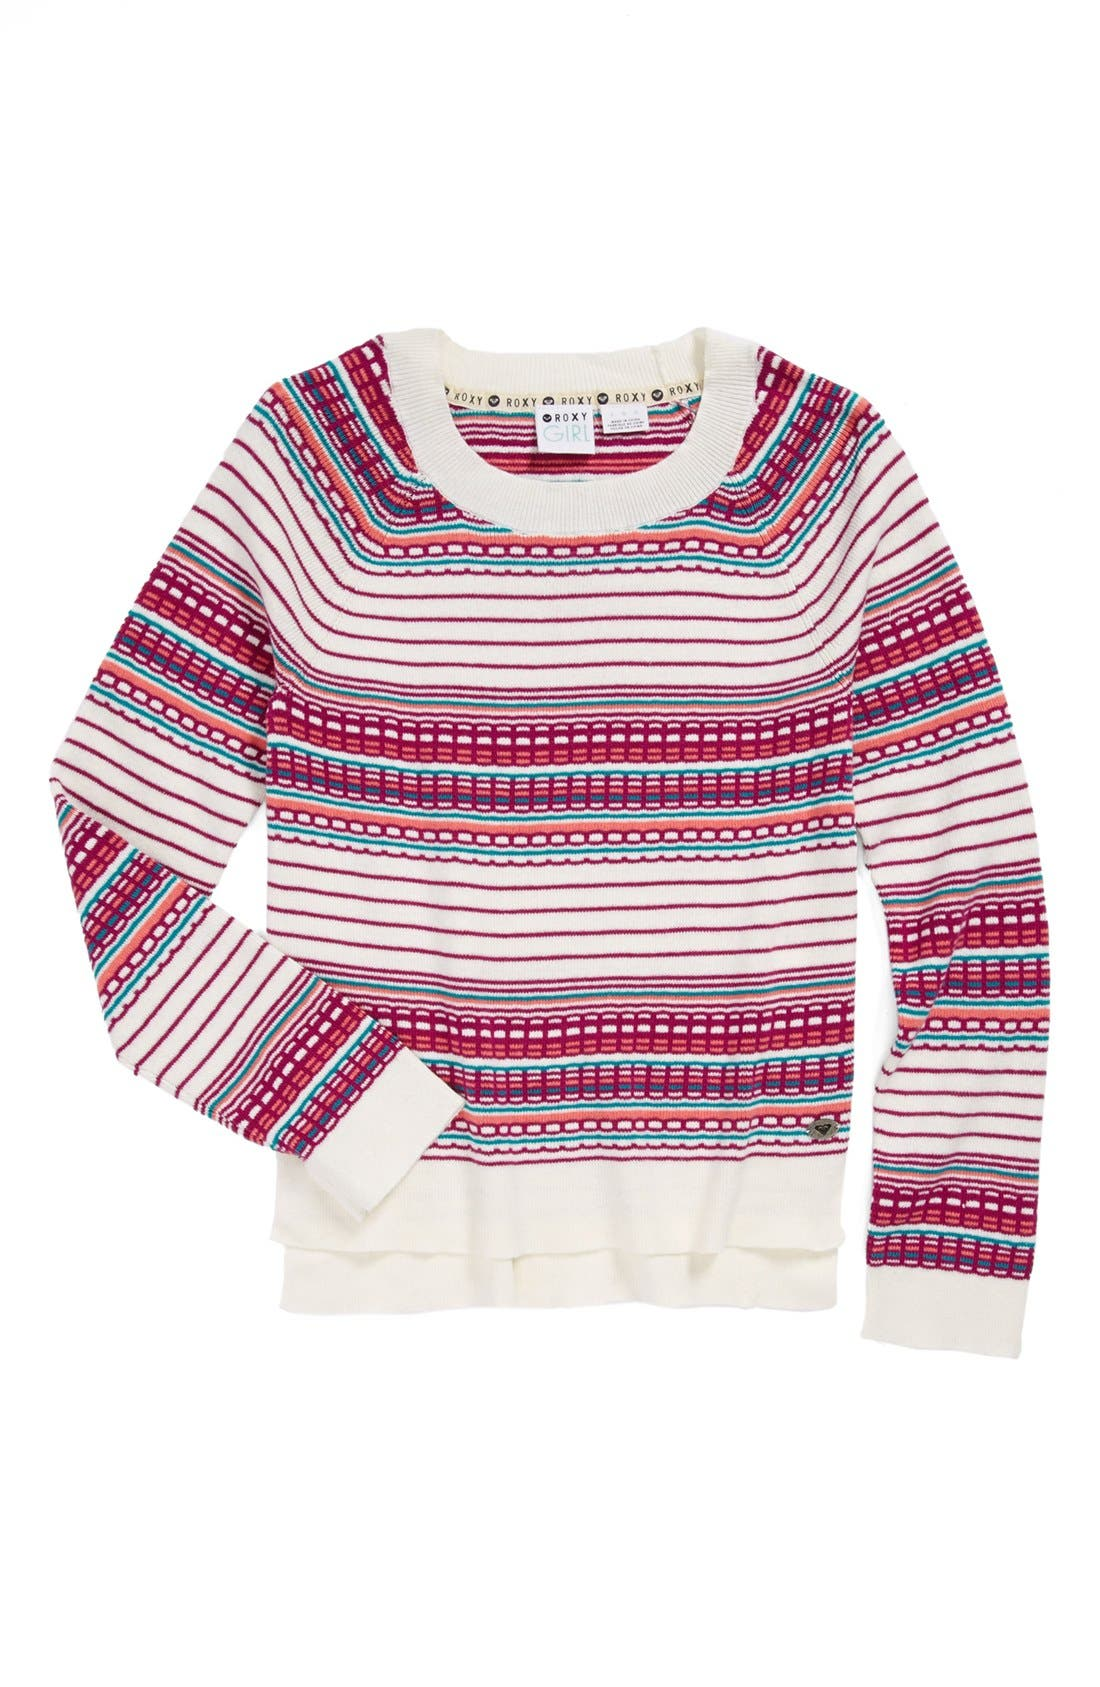 Alternate Image 1 Selected - Roxy 'In the Road' Sweater (Big Girls)